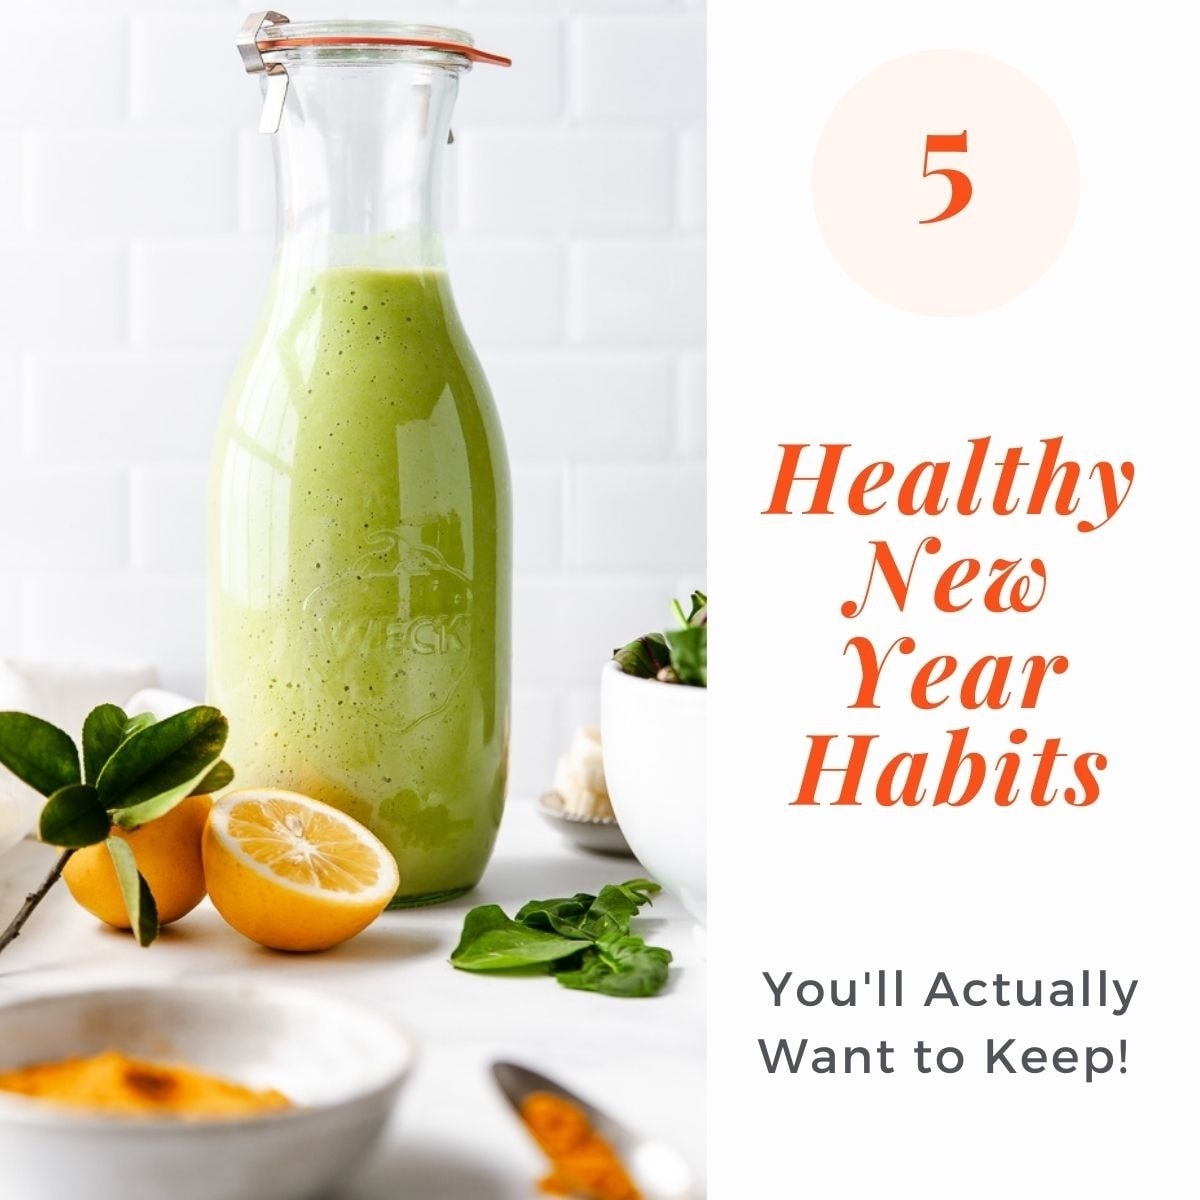 Photo of green juice surrounded by oranges and text overlay-5 healthy new year habits you'll actually want to keep.